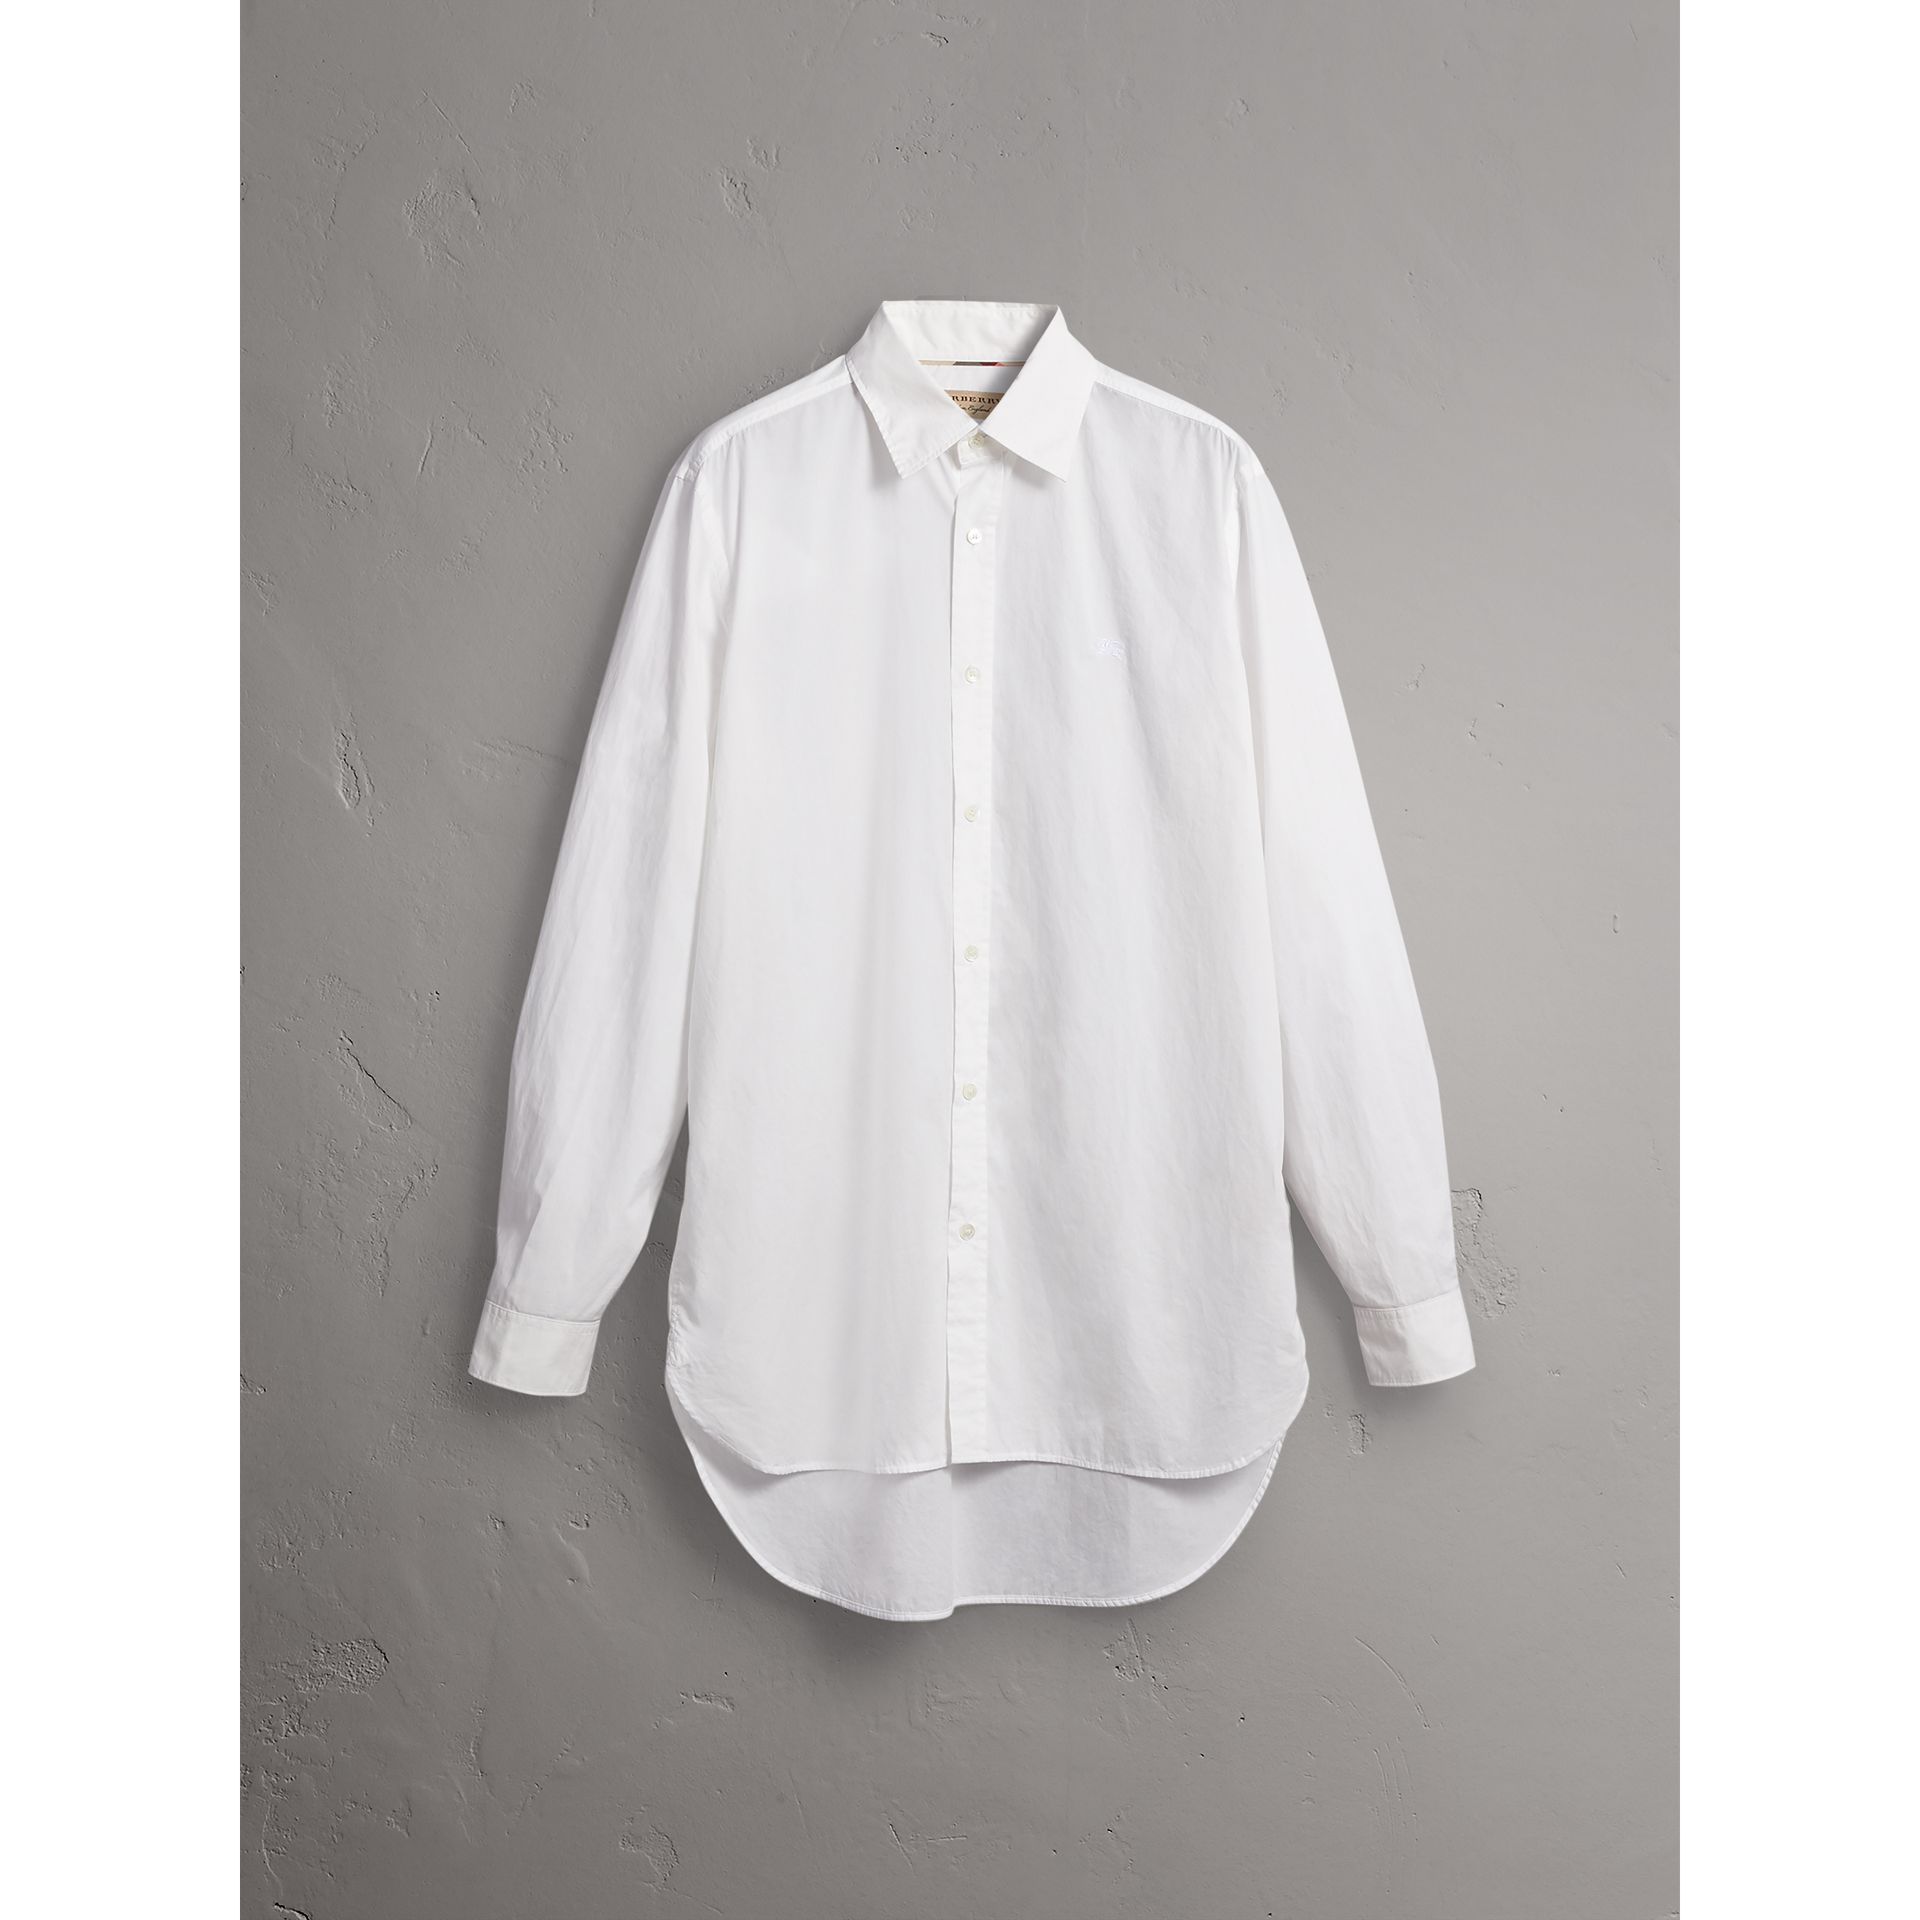 Japanese Cotton Poplin Shirt in White - Men | Burberry Singapore - gallery image 3